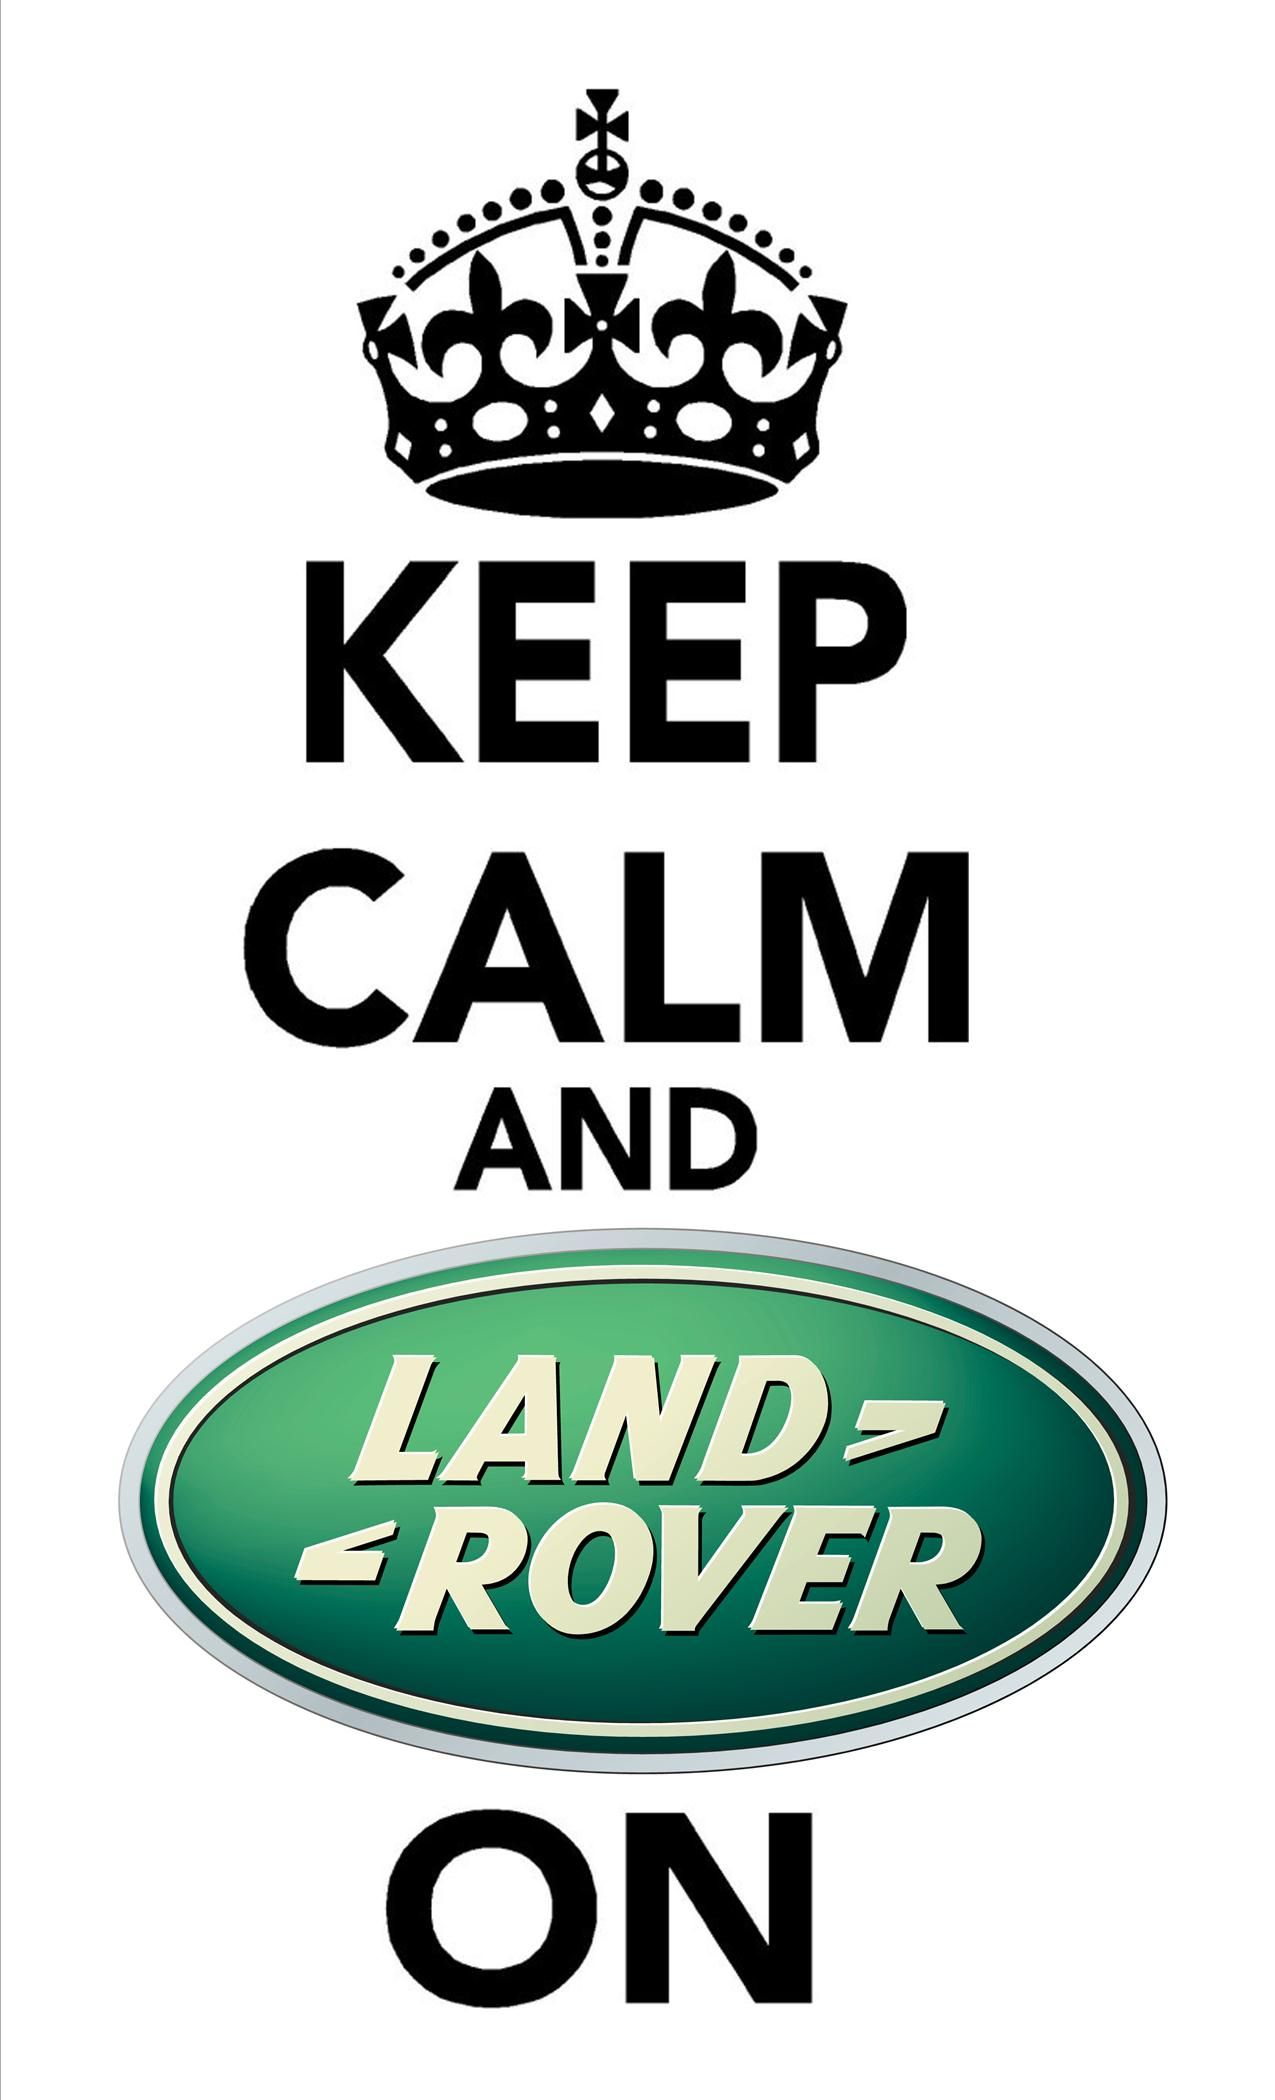 rover cab series truck parts in ebay marine blue online pin landrover land